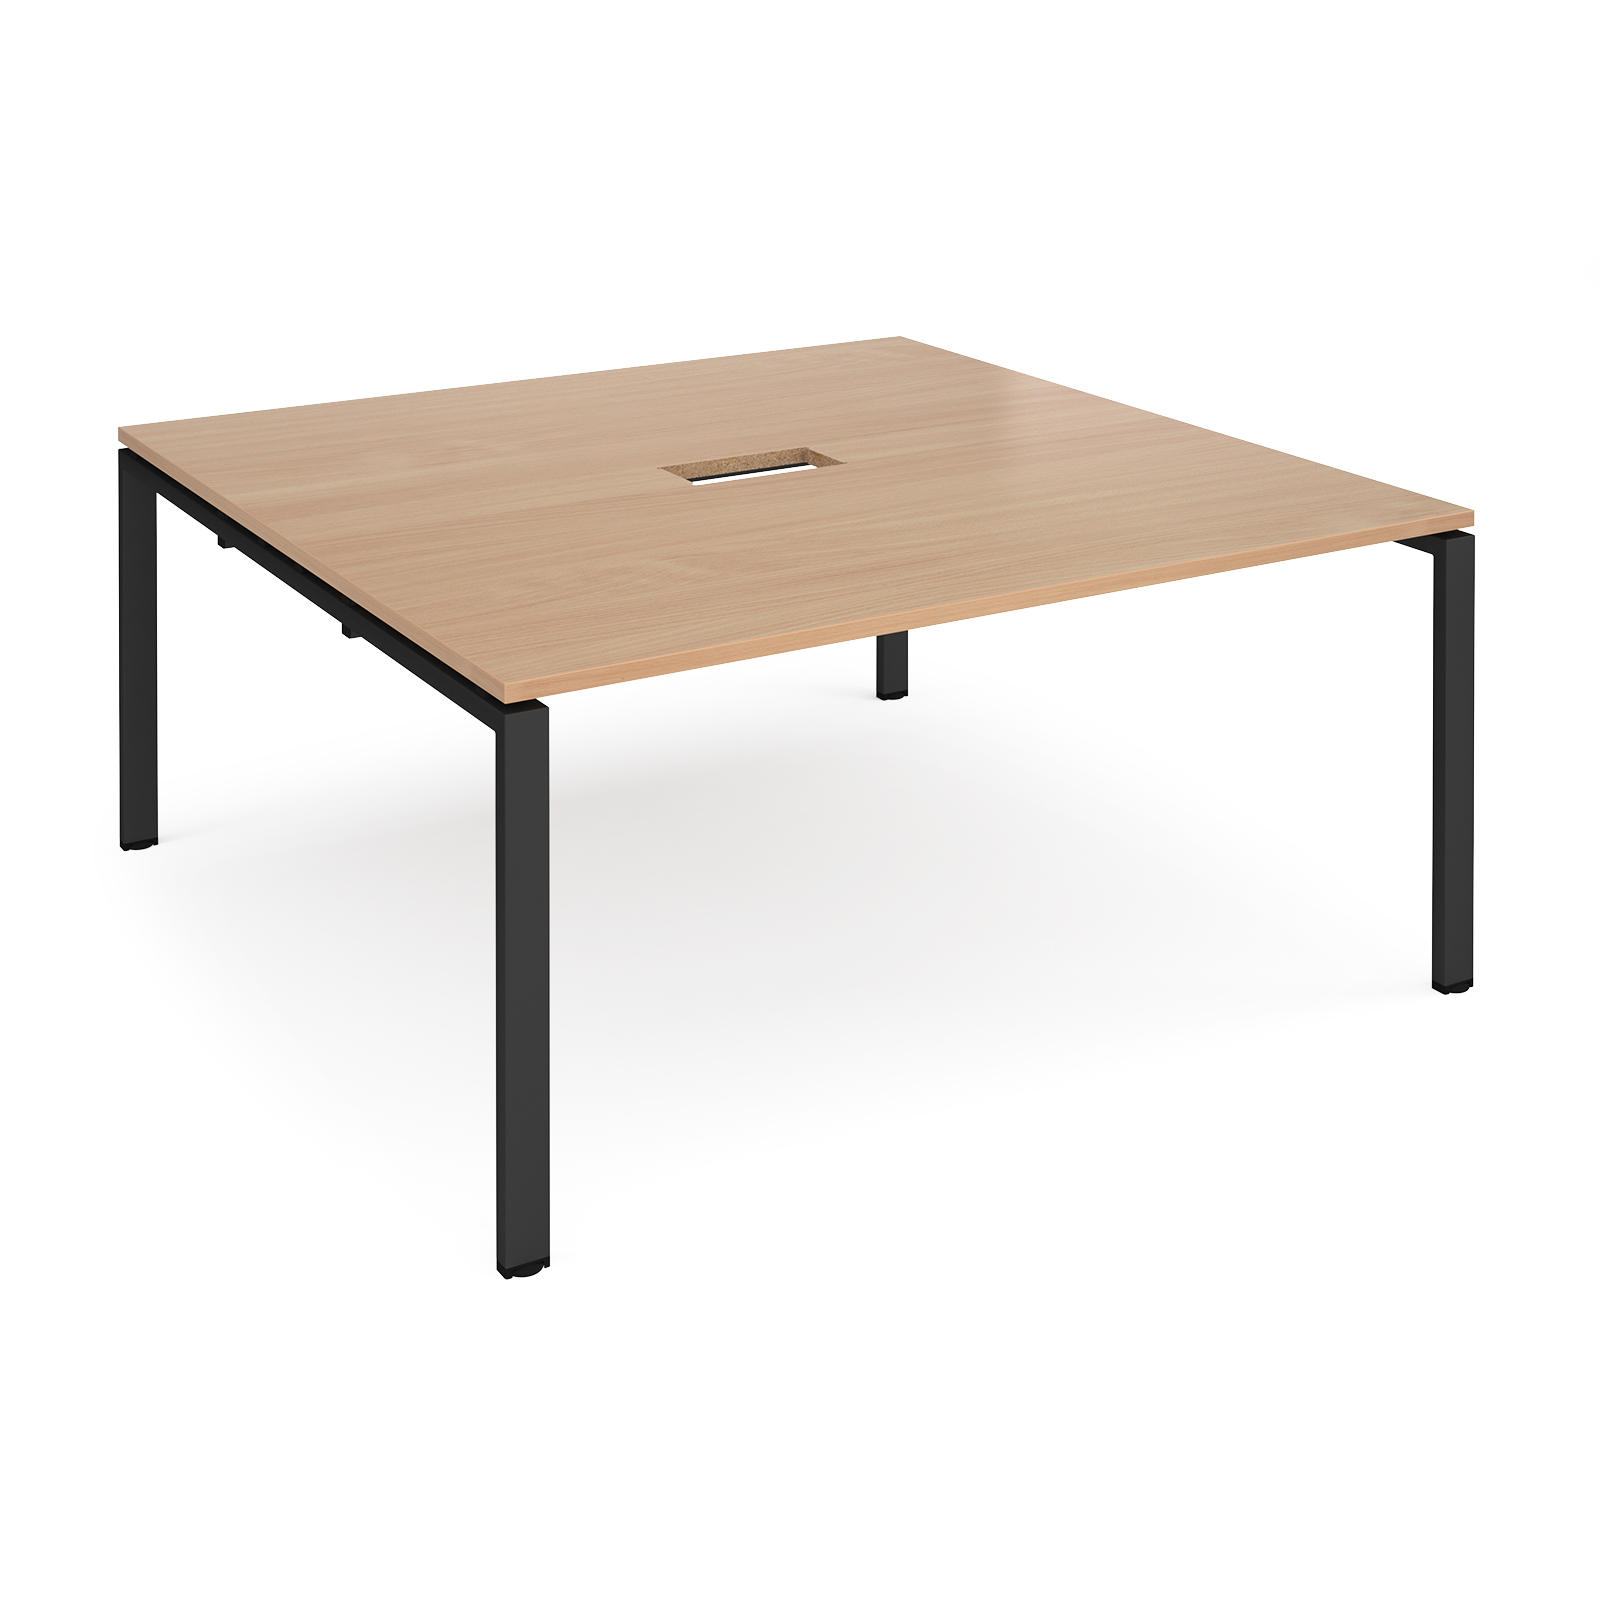 Boardroom / Meeting Adapt square power ready boardroom table